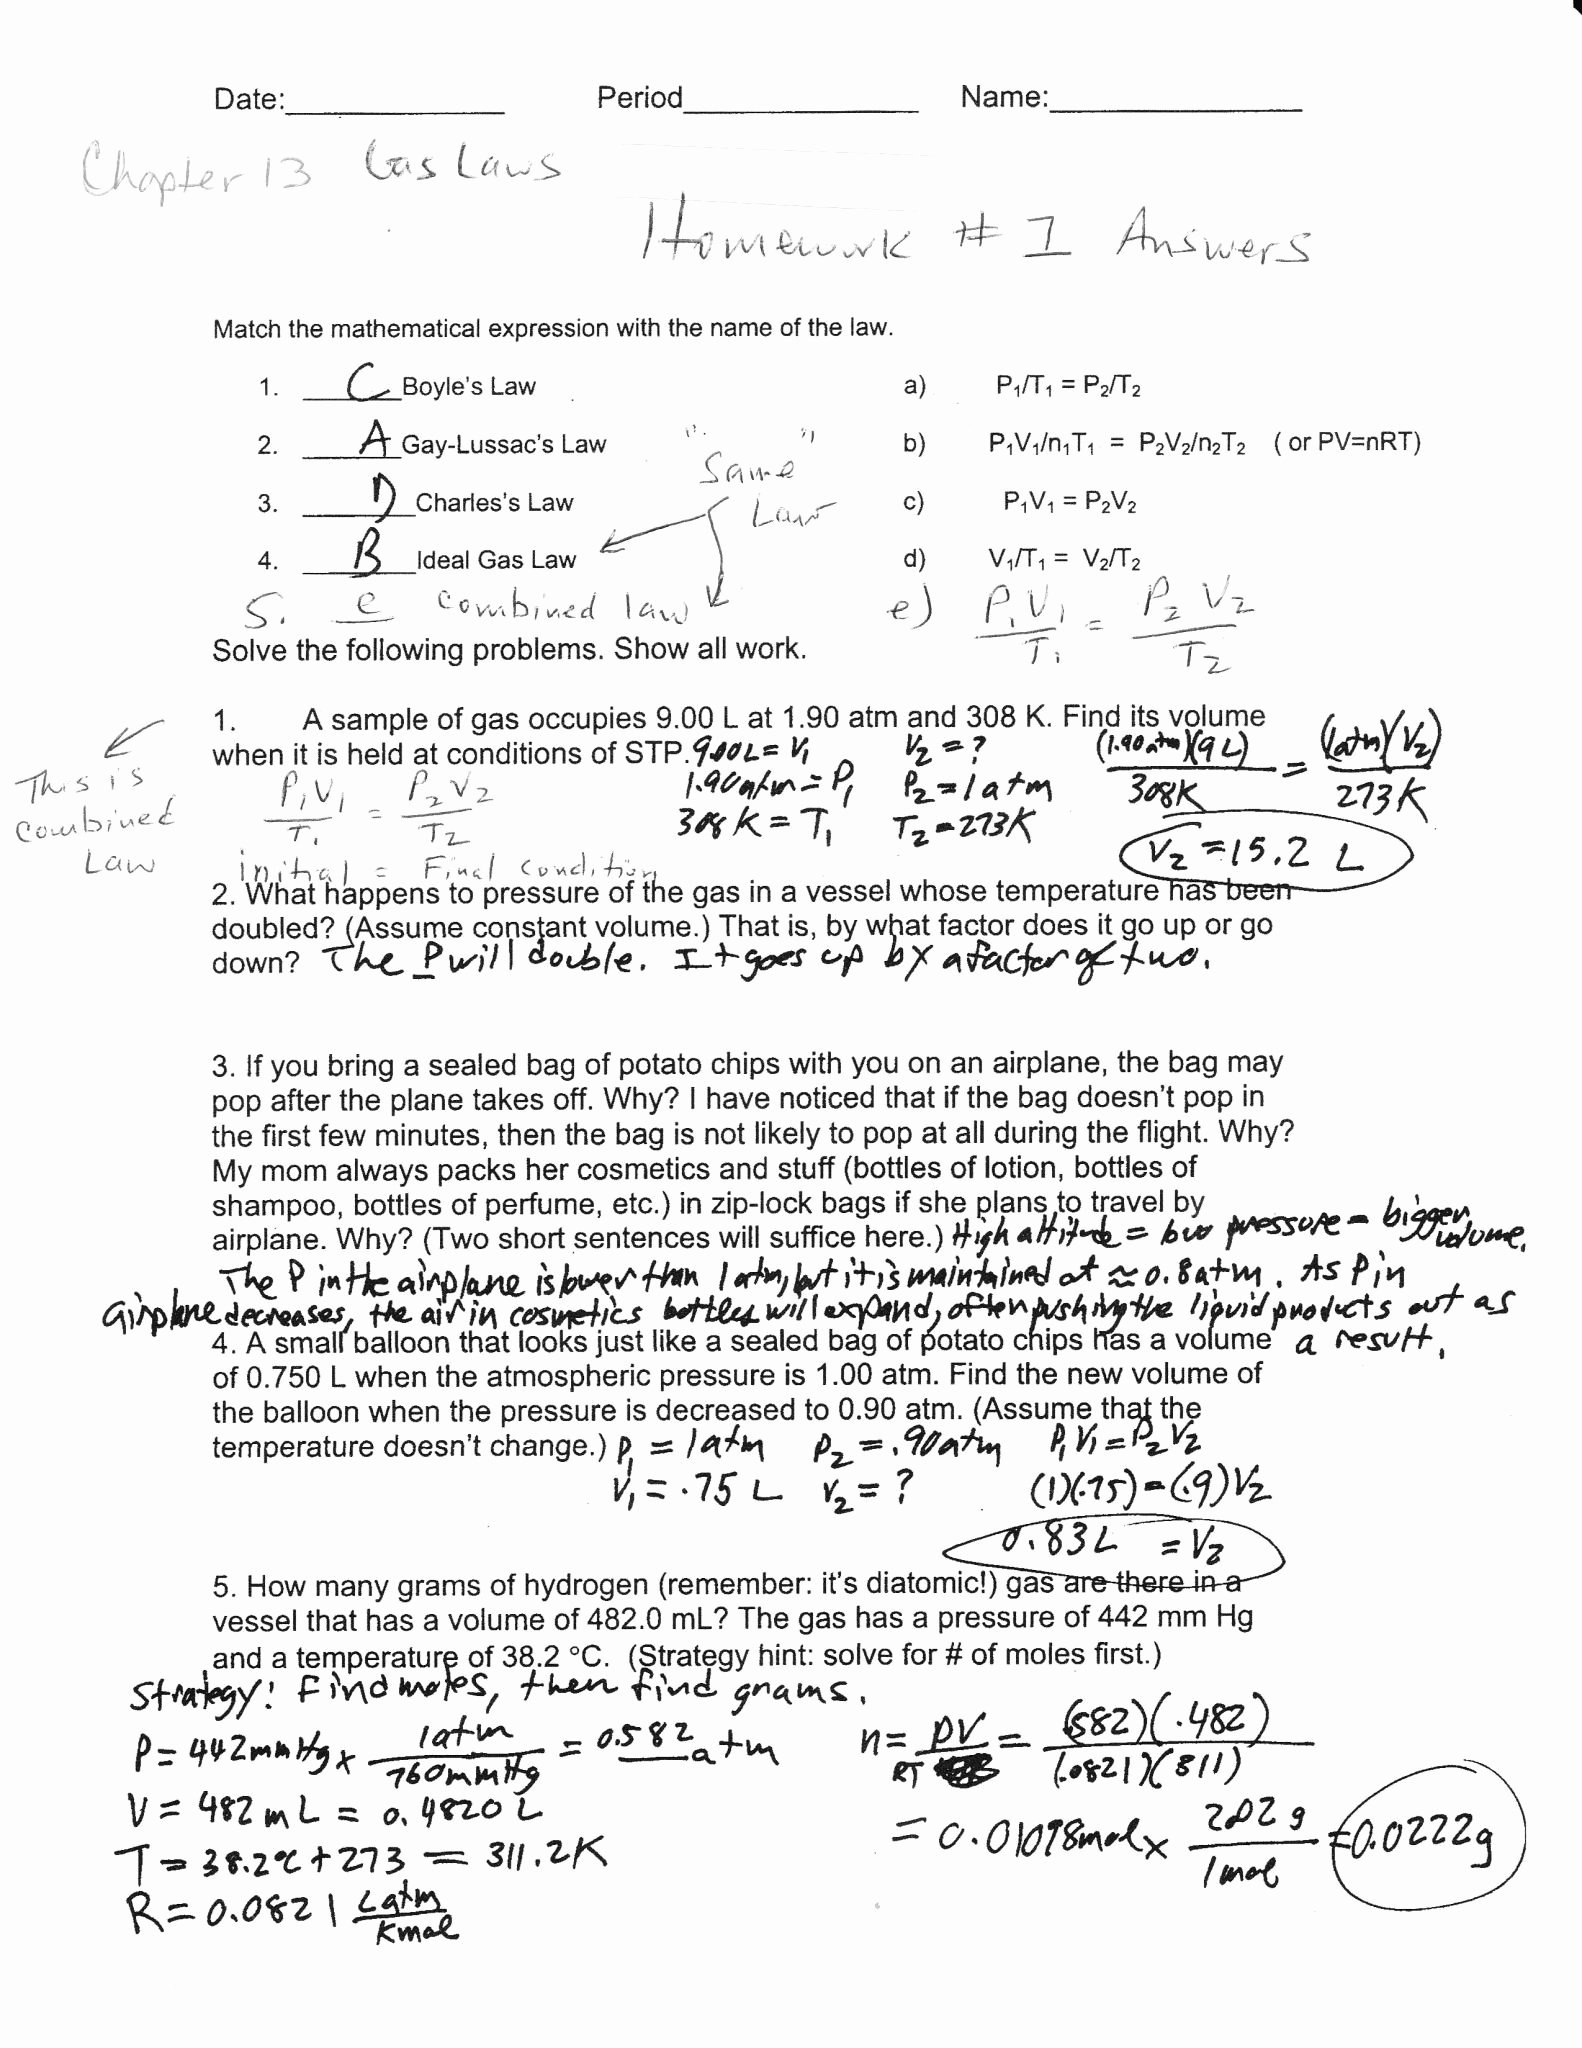 Unit Conversion Worksheet Chemistry New Metric Conversion Worksheet Chemistry